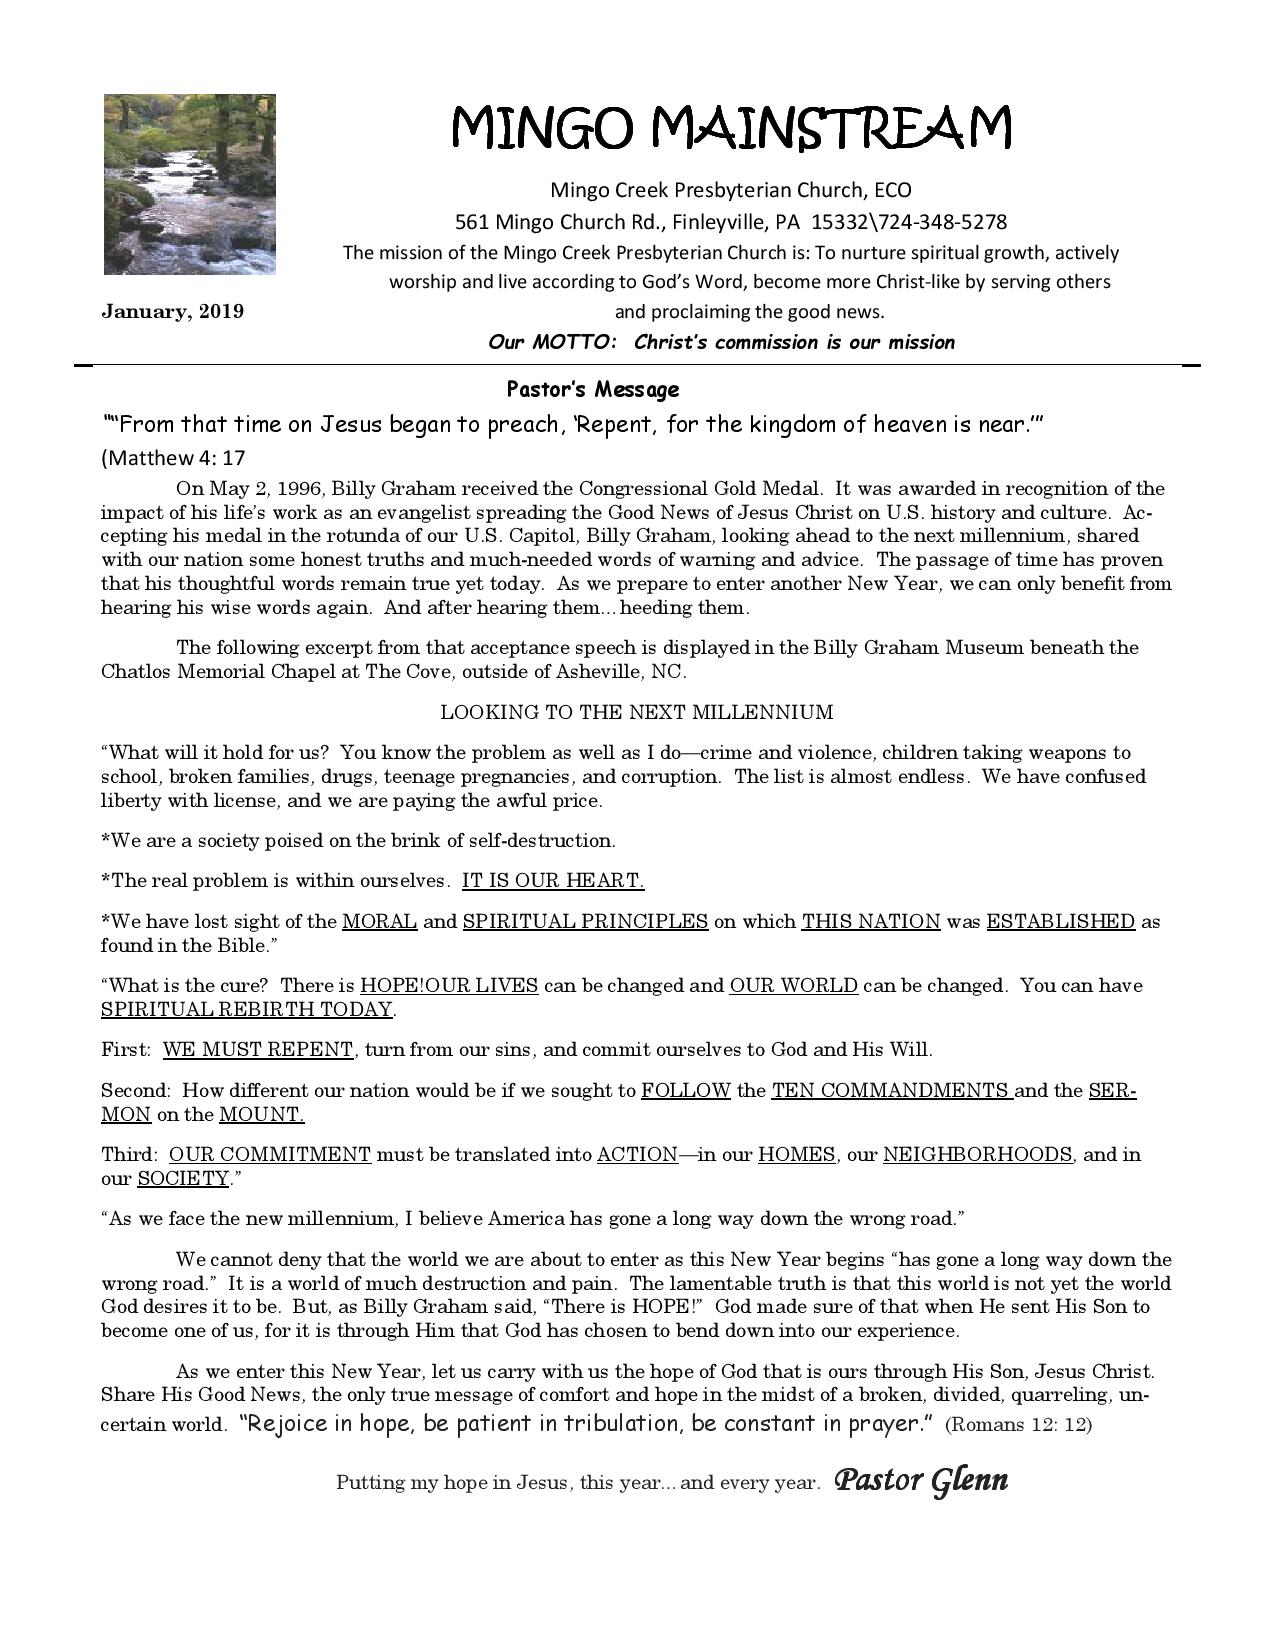 JANUARY NEWSLETTER (1)-page-001.jpg